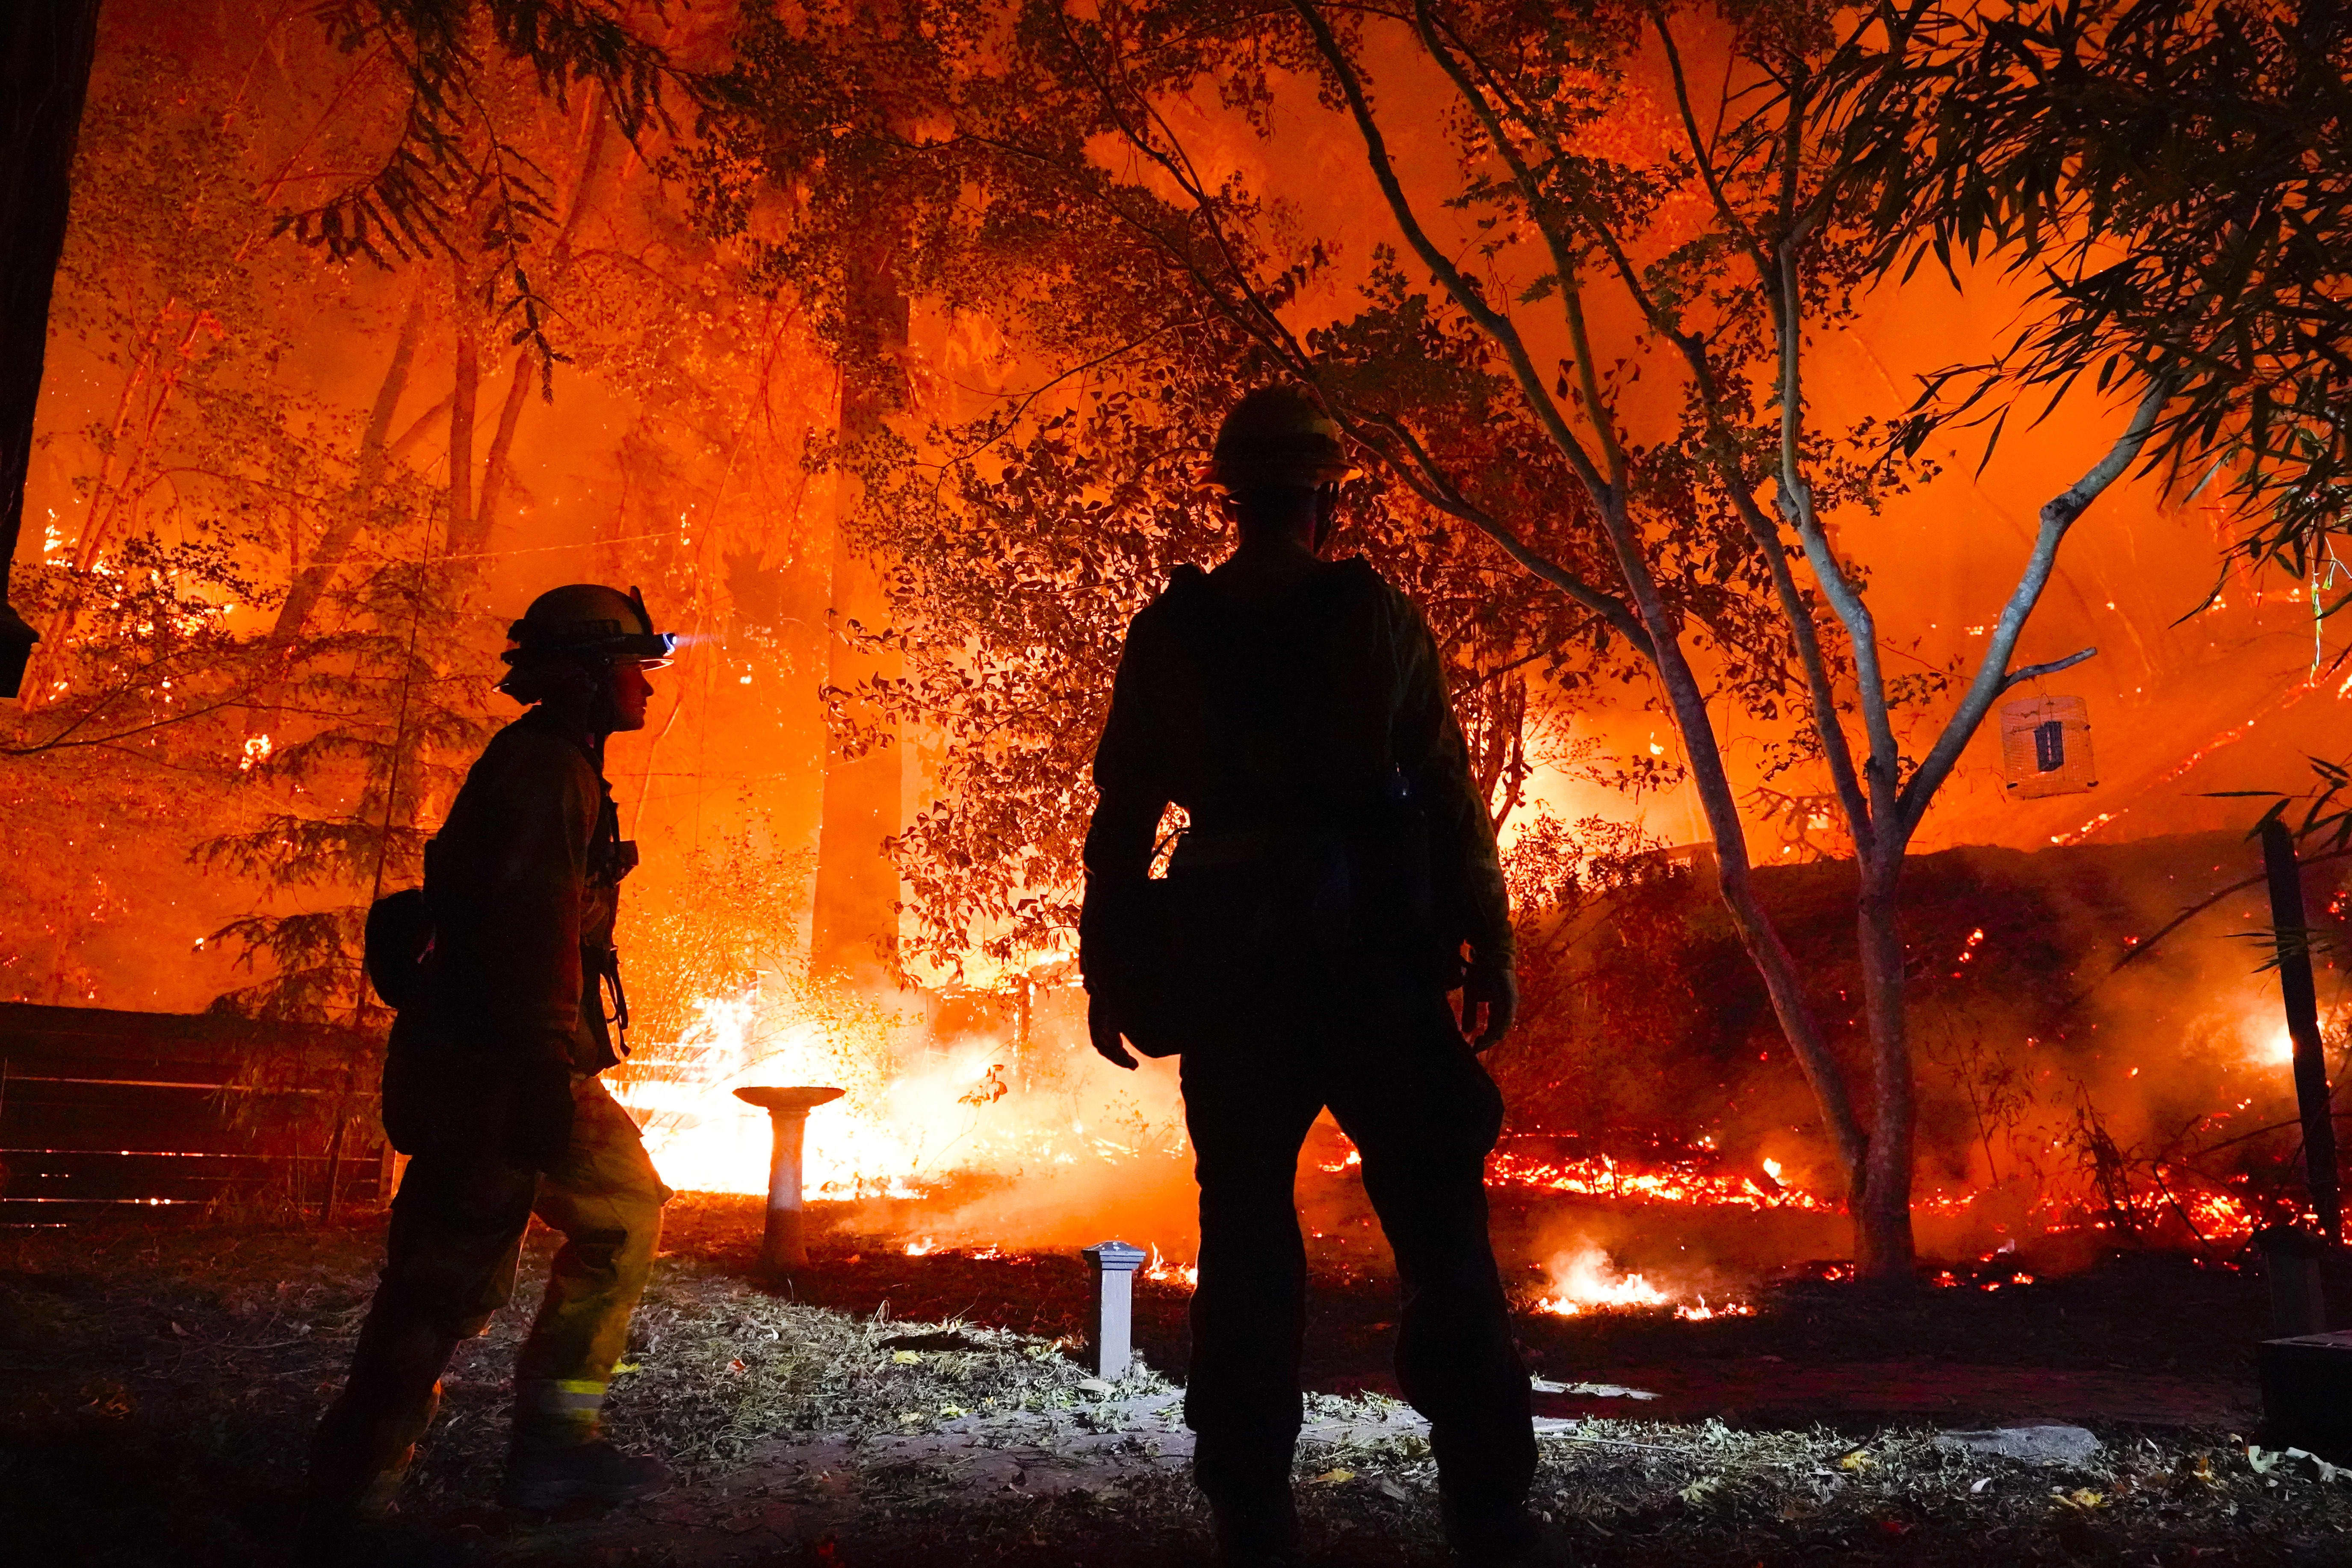 California battles more than 500 fires with no end in sight as emergency response stretched thin